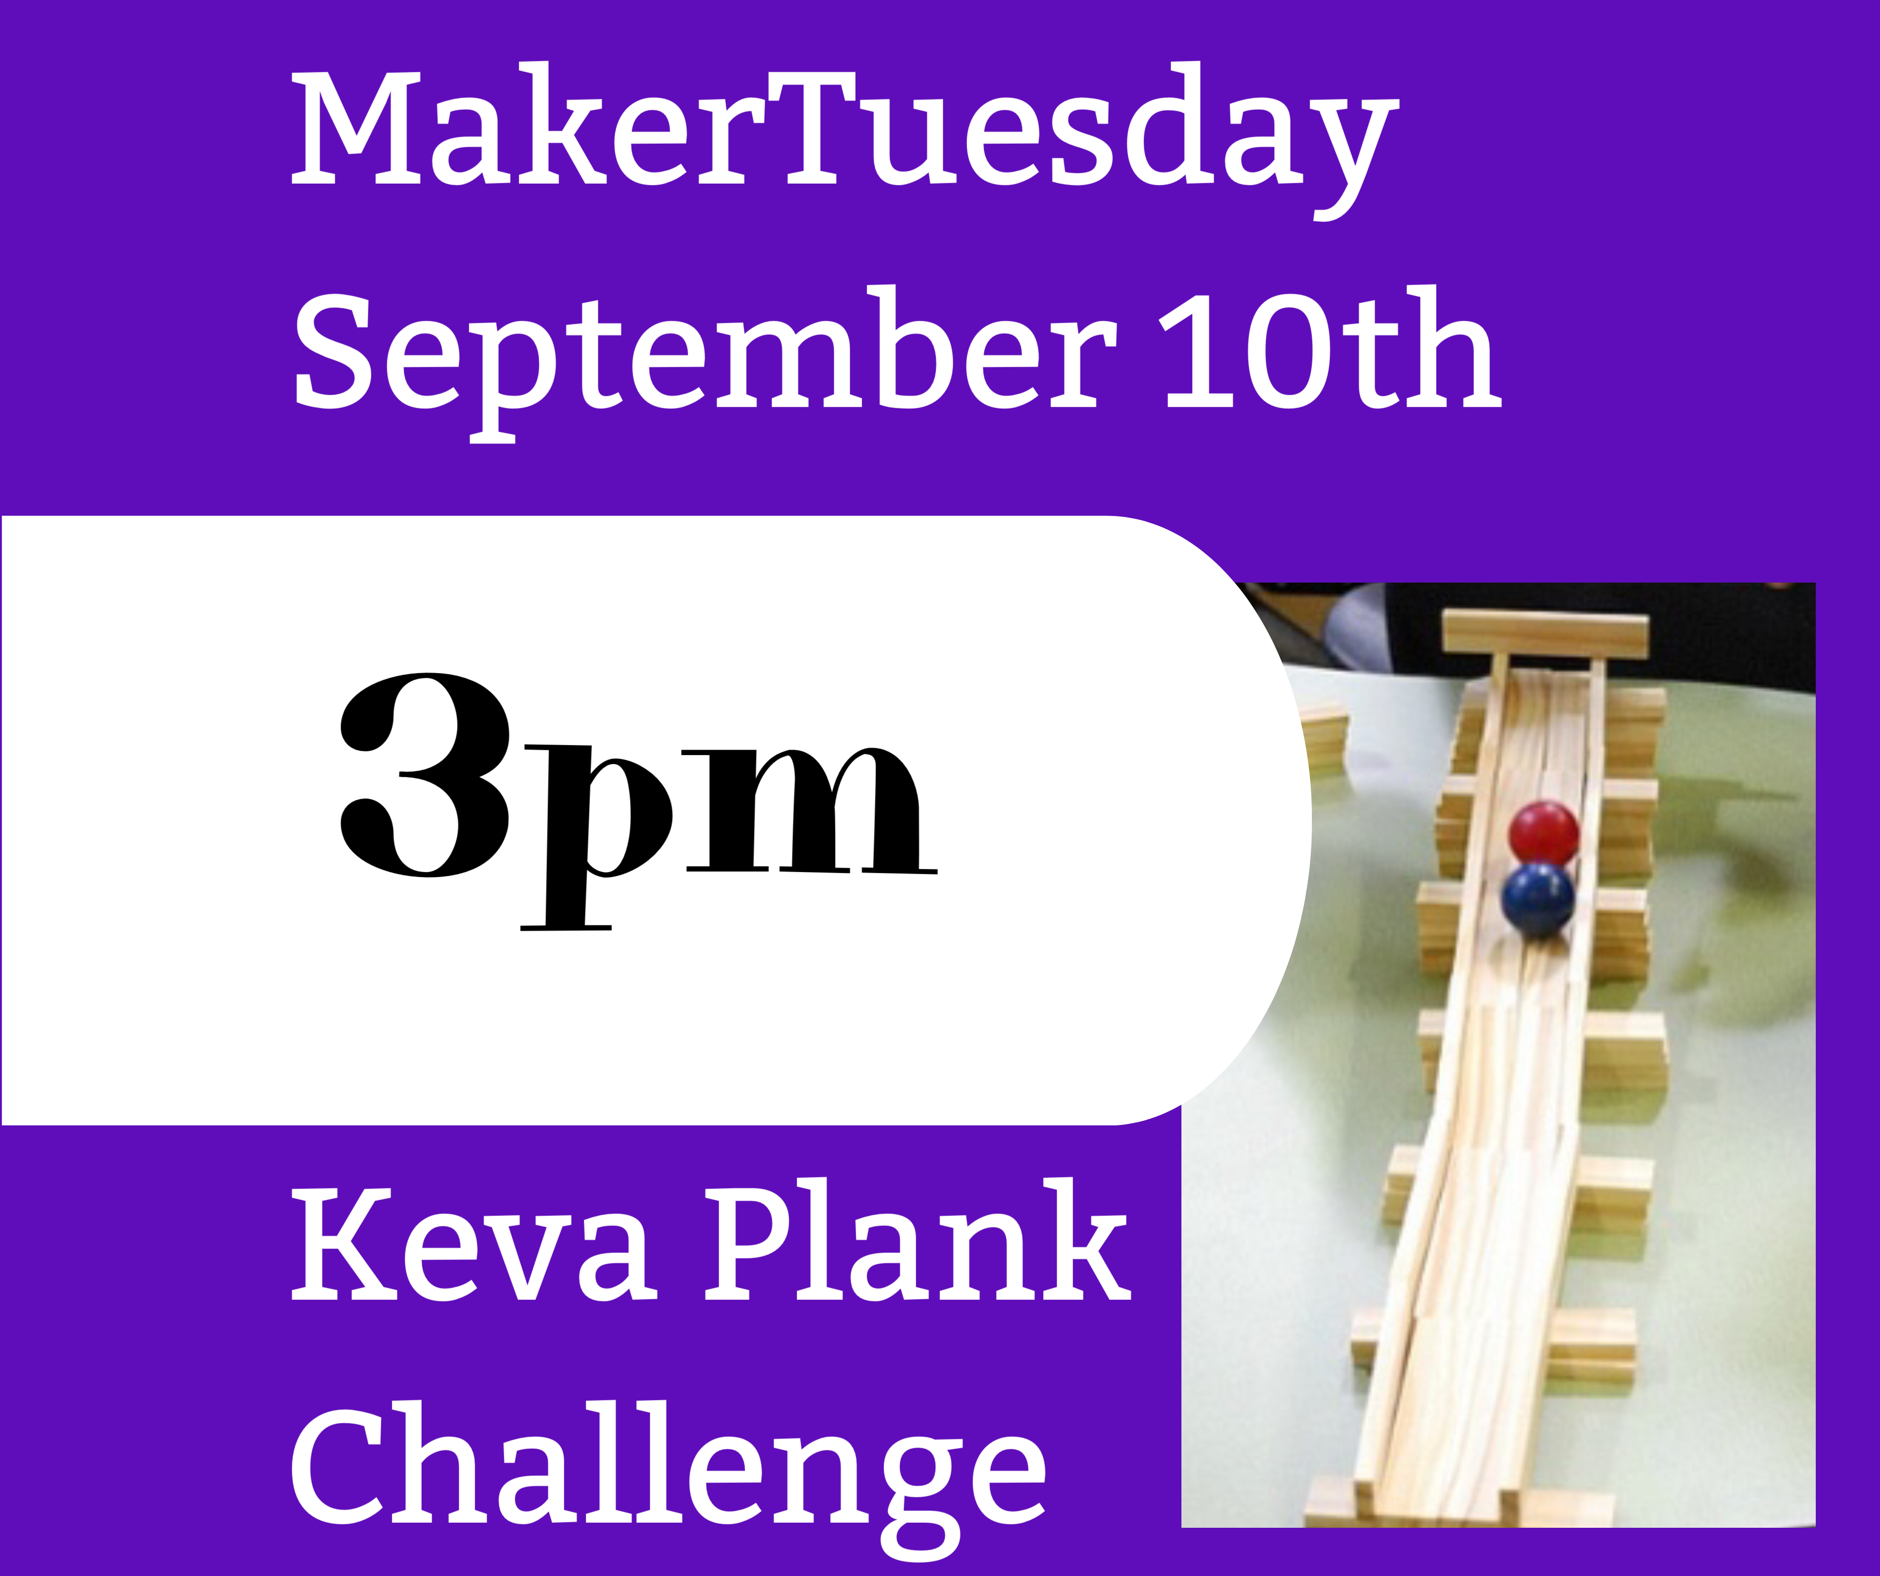 MakerTuesday -Keva Plank Challenge